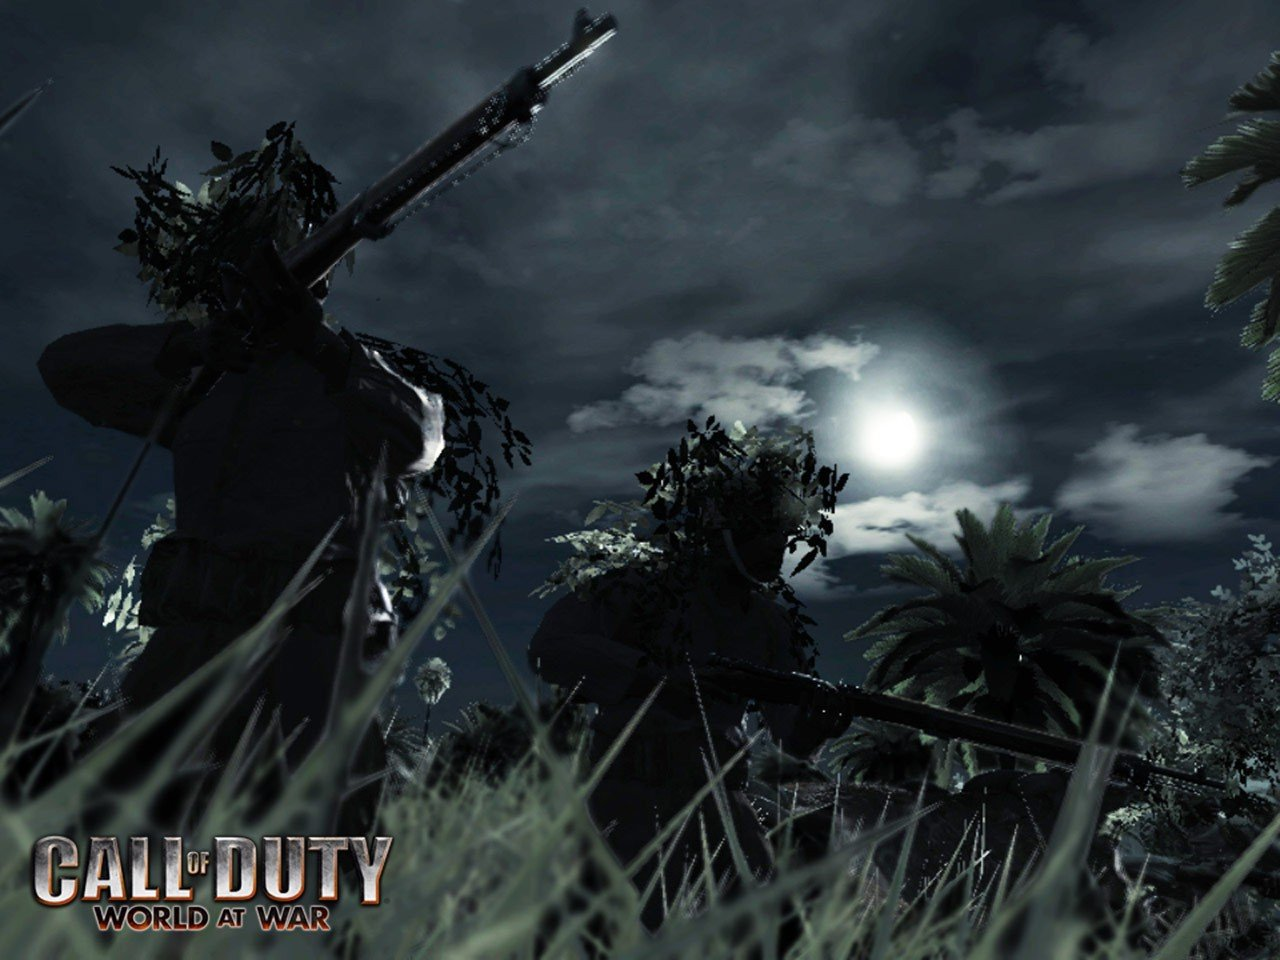 Call of Duty 5 World at War PC Game Free Download 2.9GB Compressed